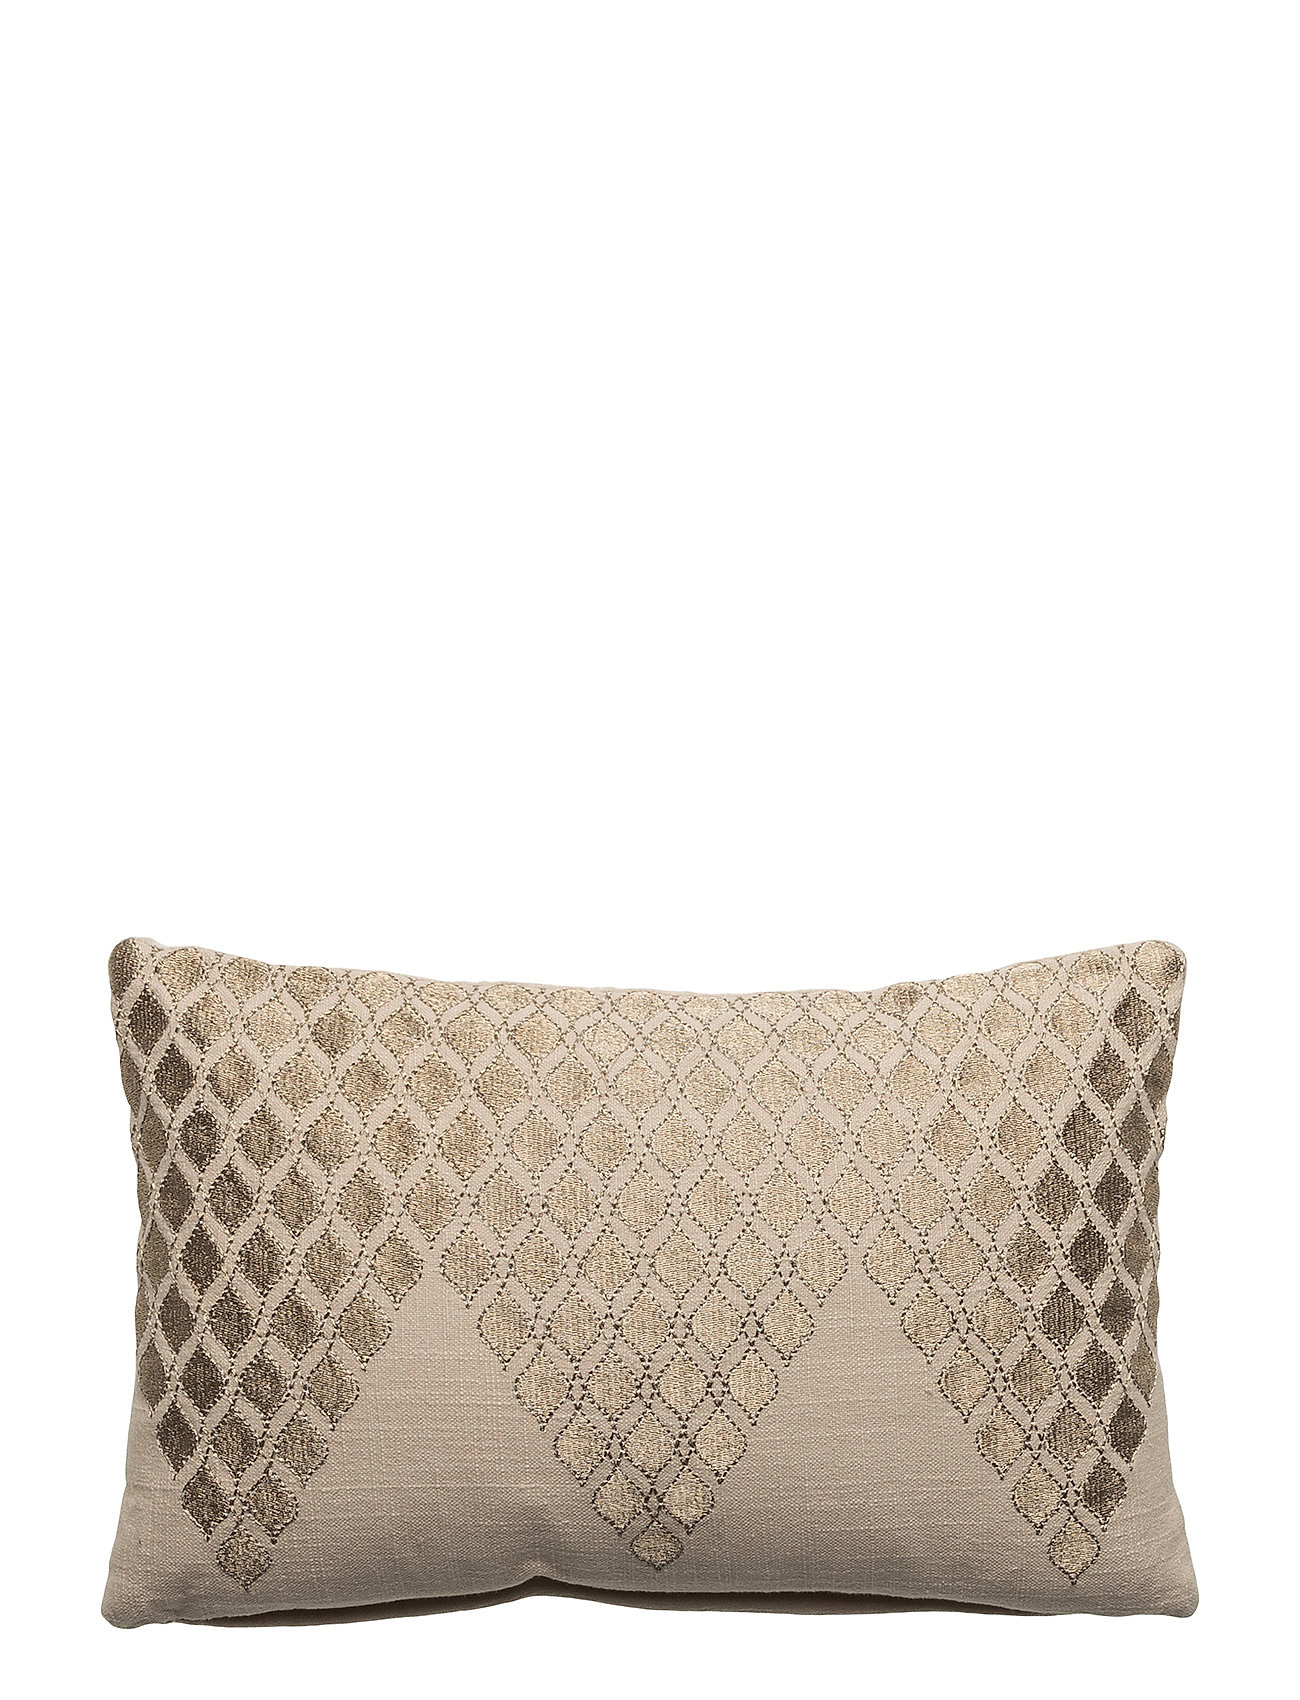 DAY Home Lentillo Cushion Cover - CONCRETE